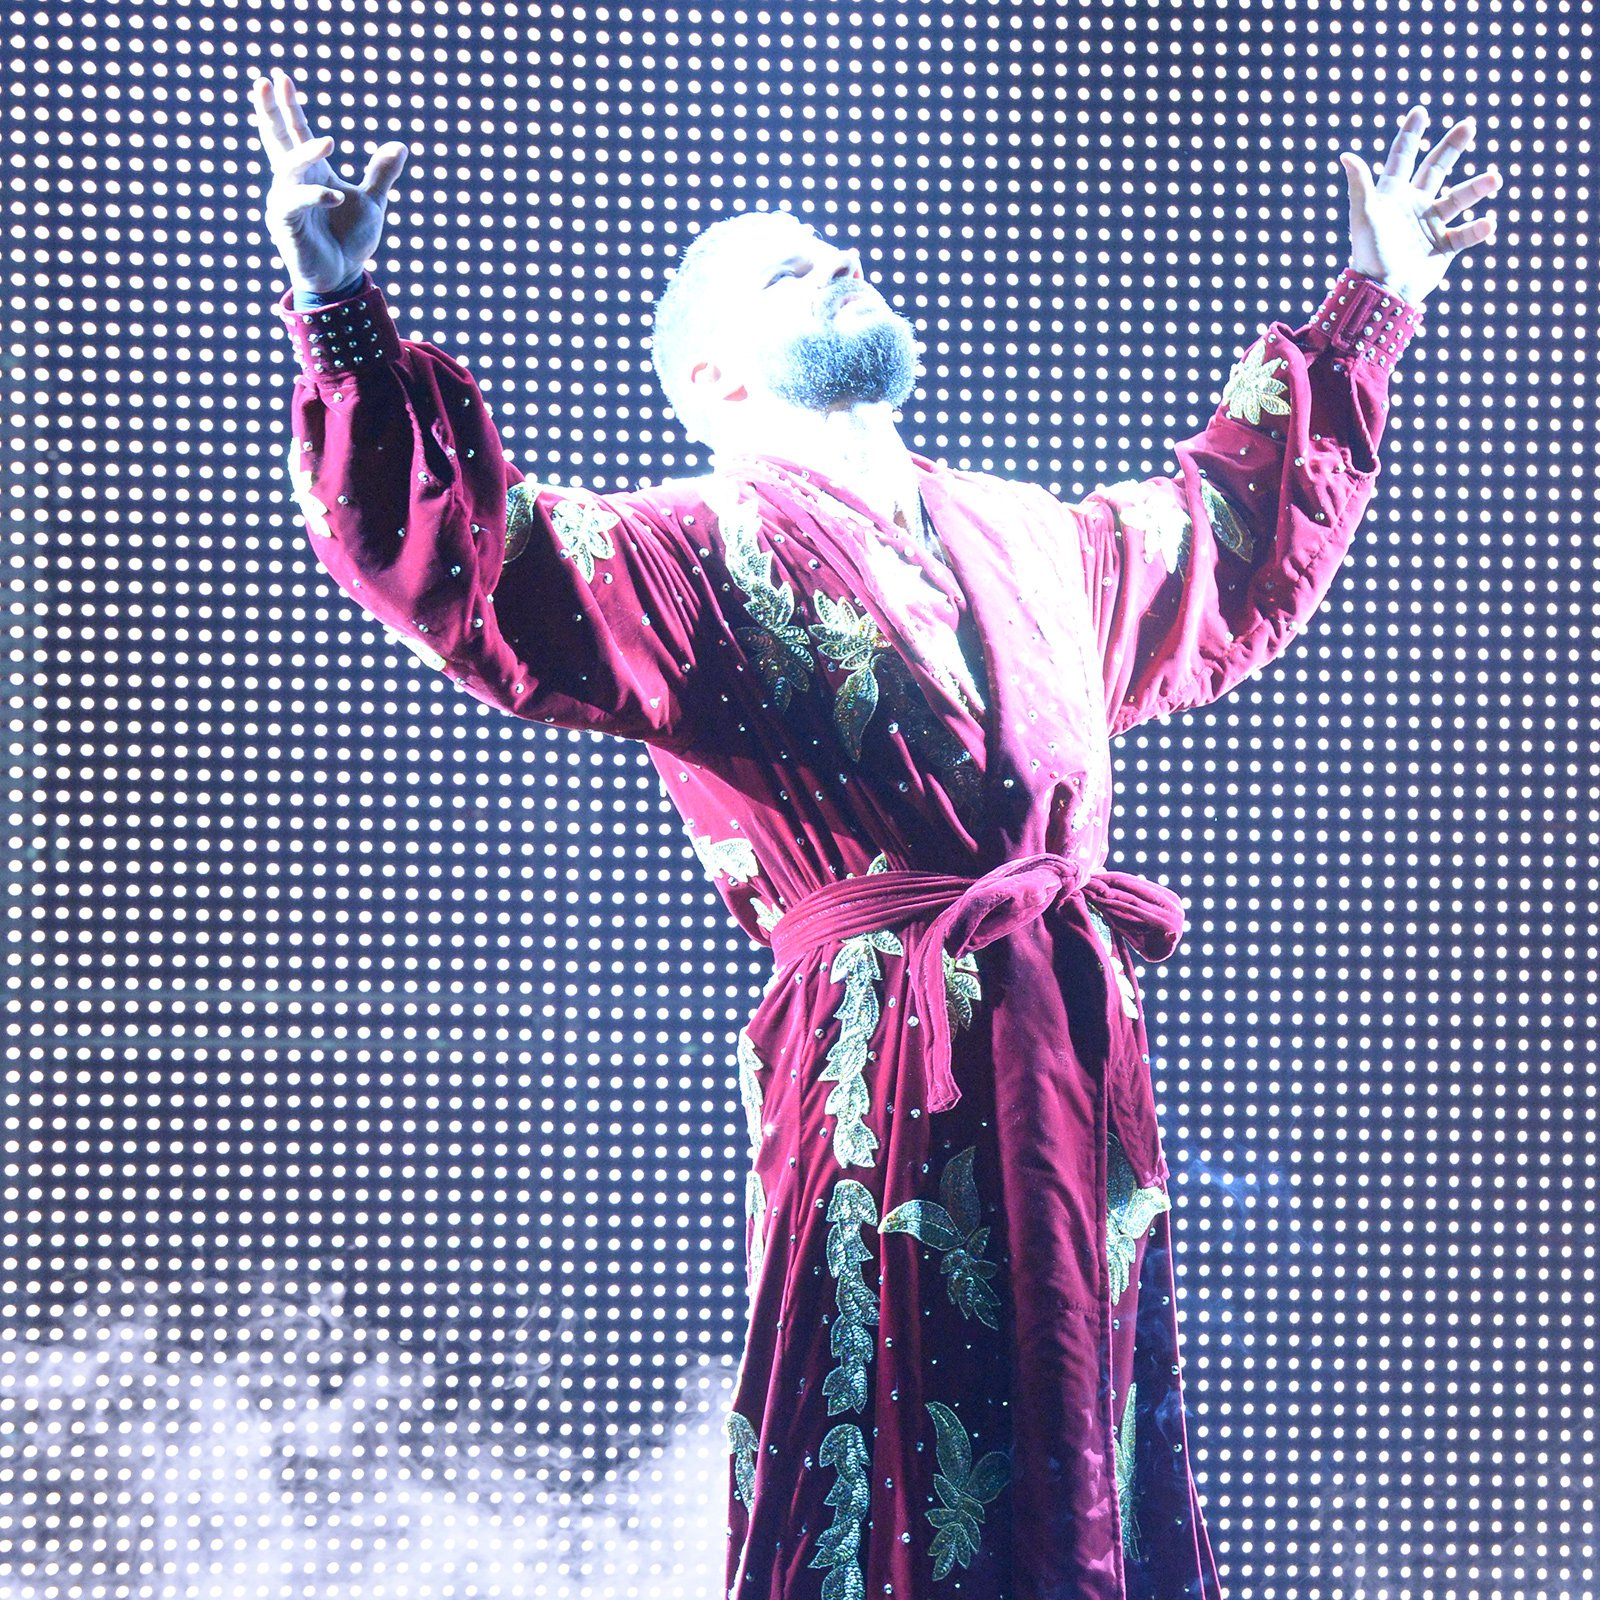 Fresh off his win over Dolph Ziggler at WWE Hell in a Cell, Bobby Roode makes his Glorious entrance.